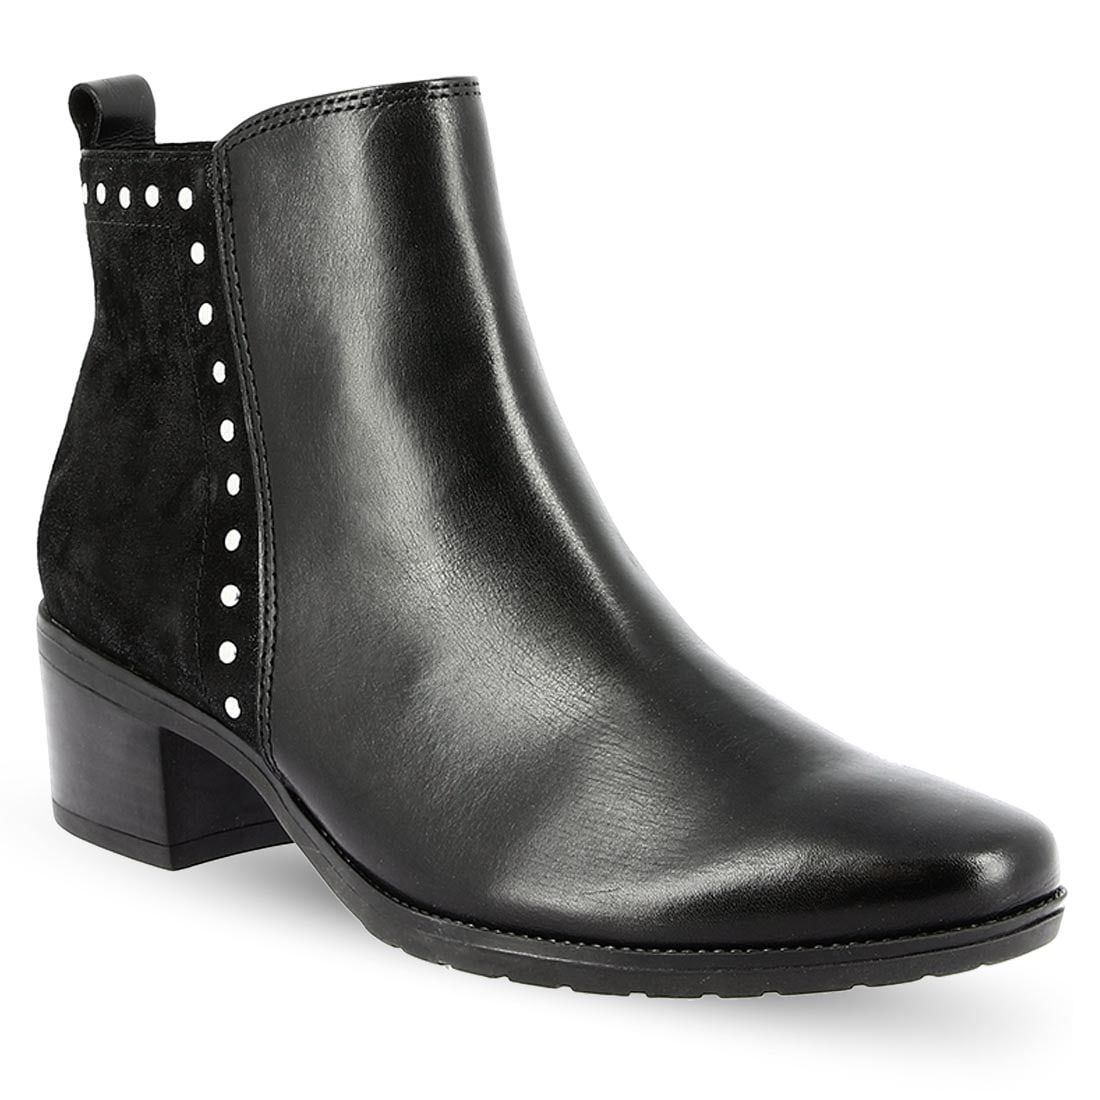 Women's Leather Ankle Boots CAPRICE 9-9